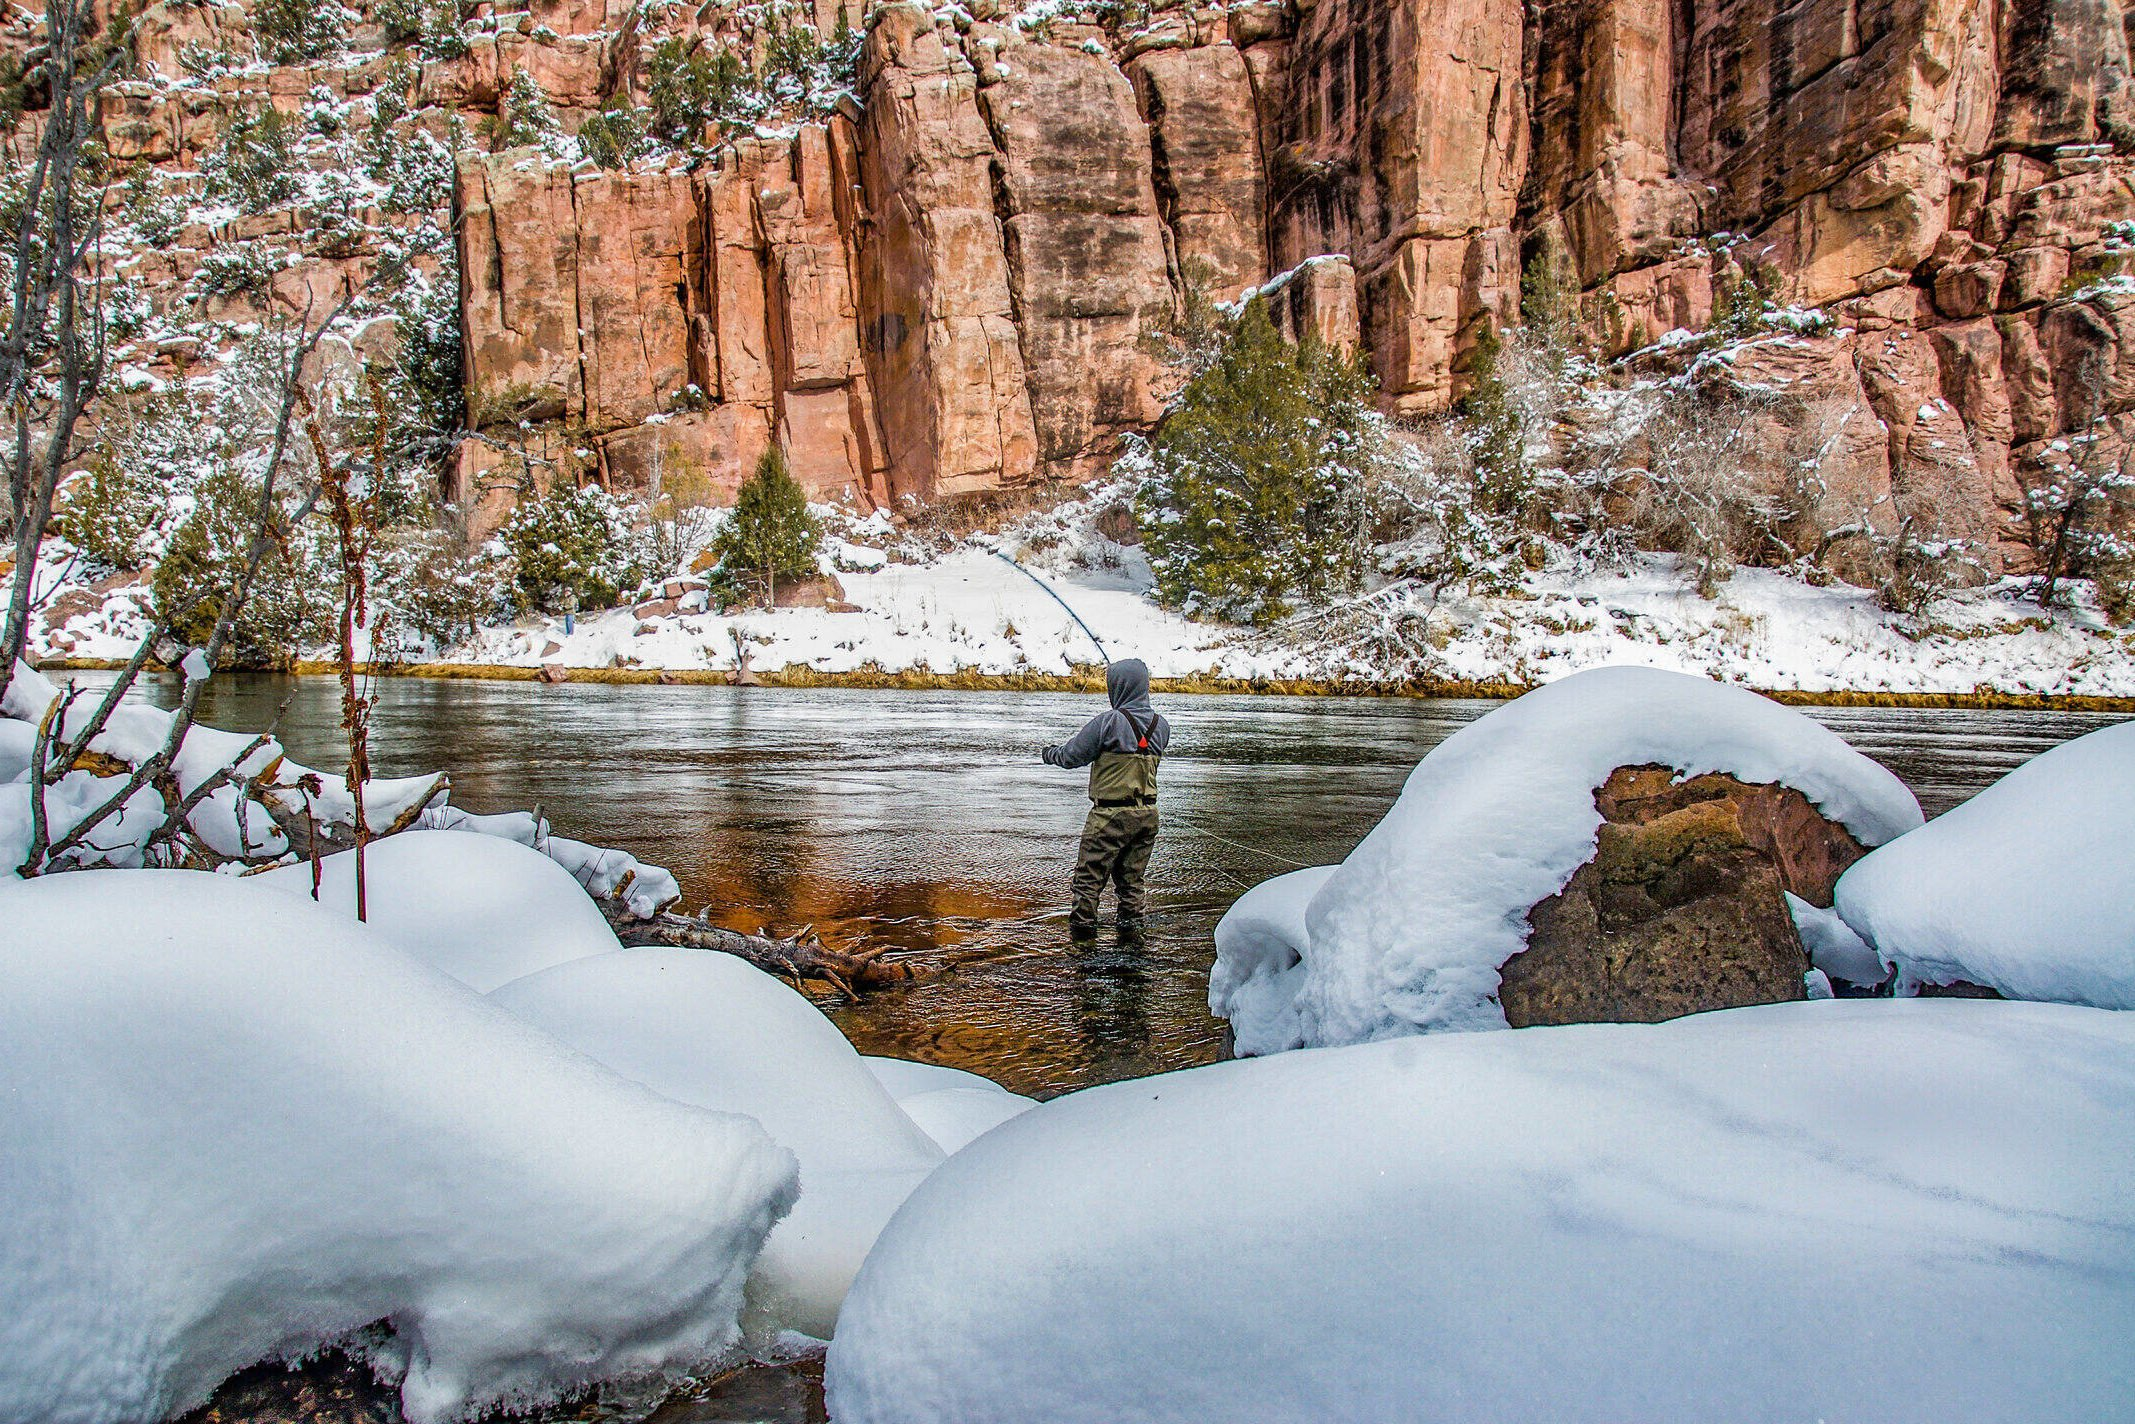 An angler in knee-deep water is casting for Rainbow Trout, in Flaming Gorge. The front of the picture shows snow-covered stones, and the back shows orange cliffs.